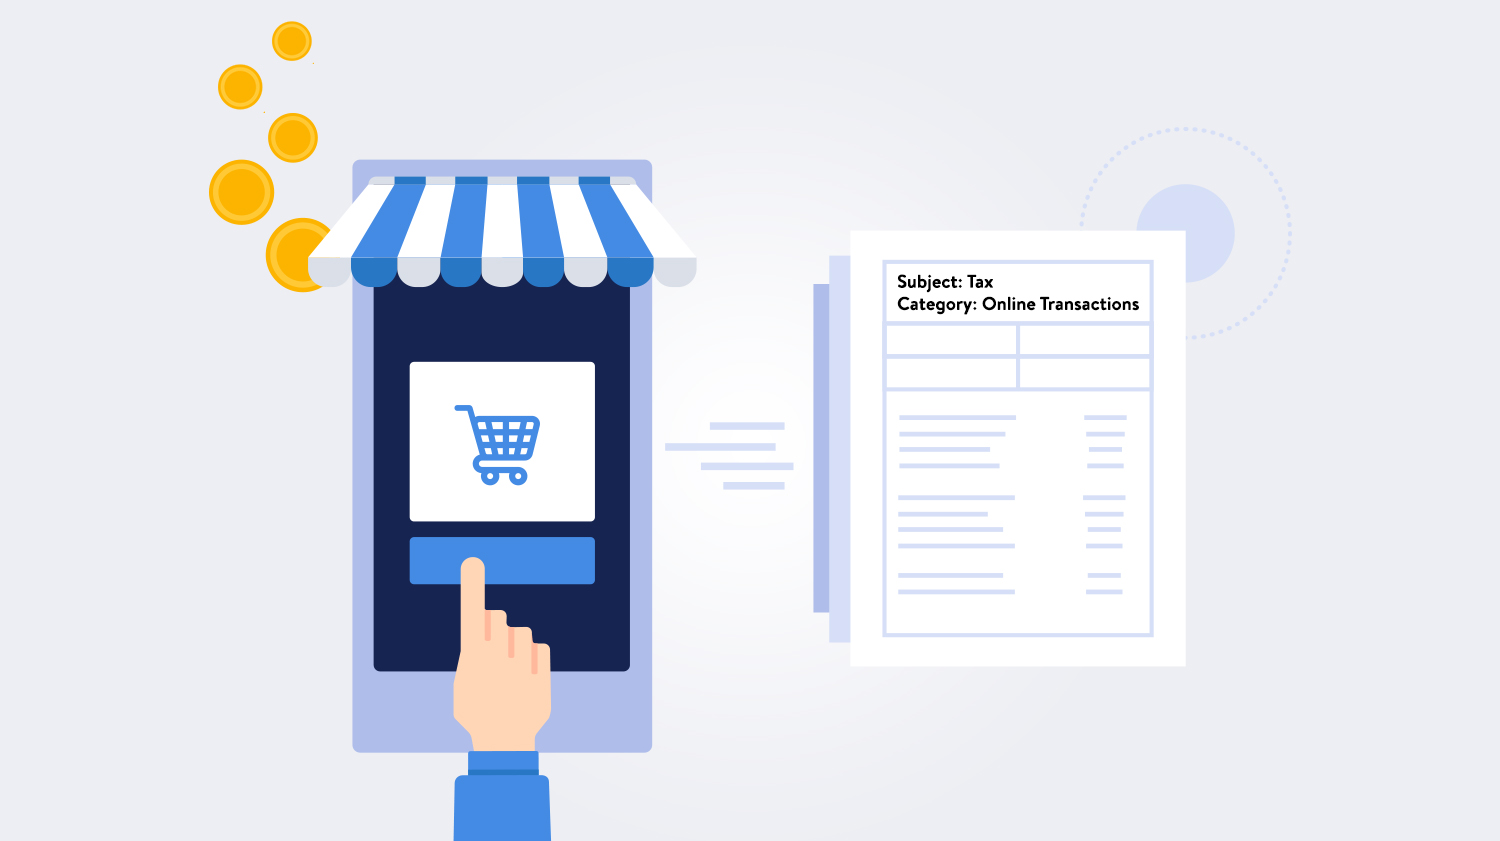 E-commerce in the Philippines: Tax compliance for online transactions